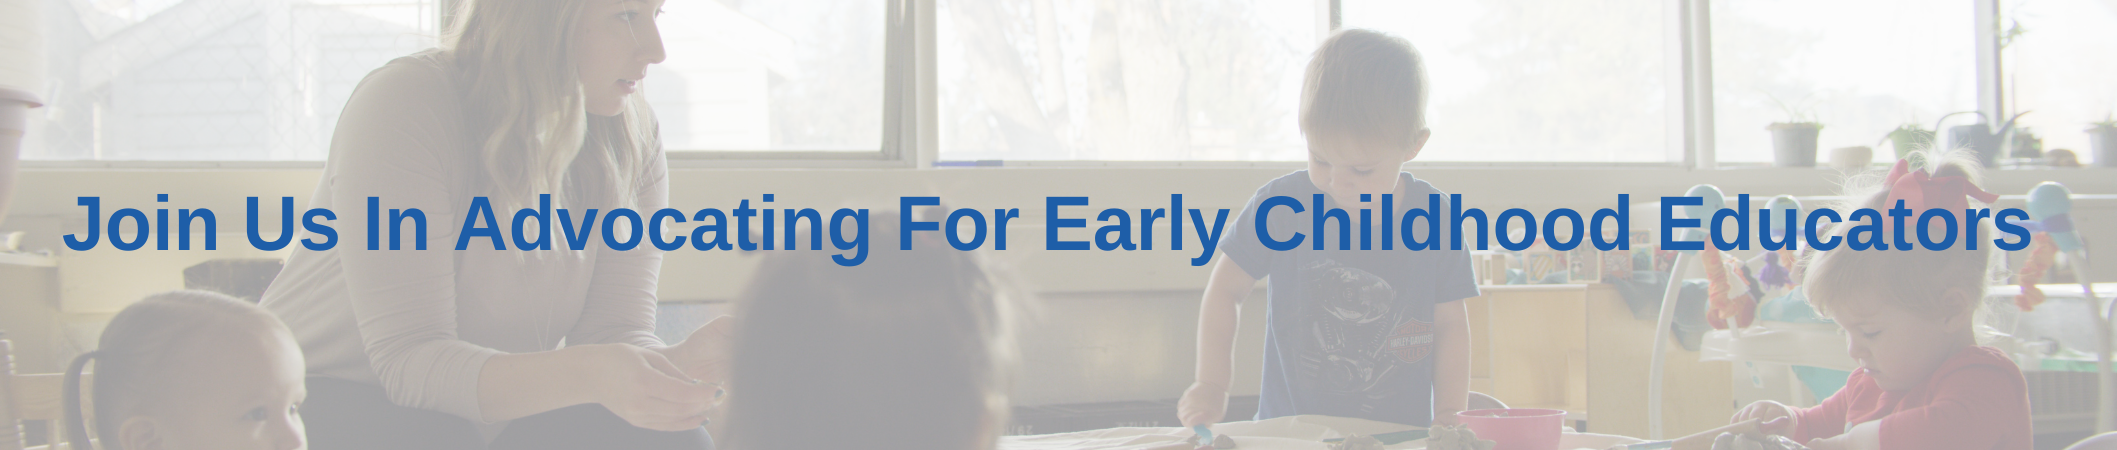 Join Us In Advocating for Early Childhood Educators